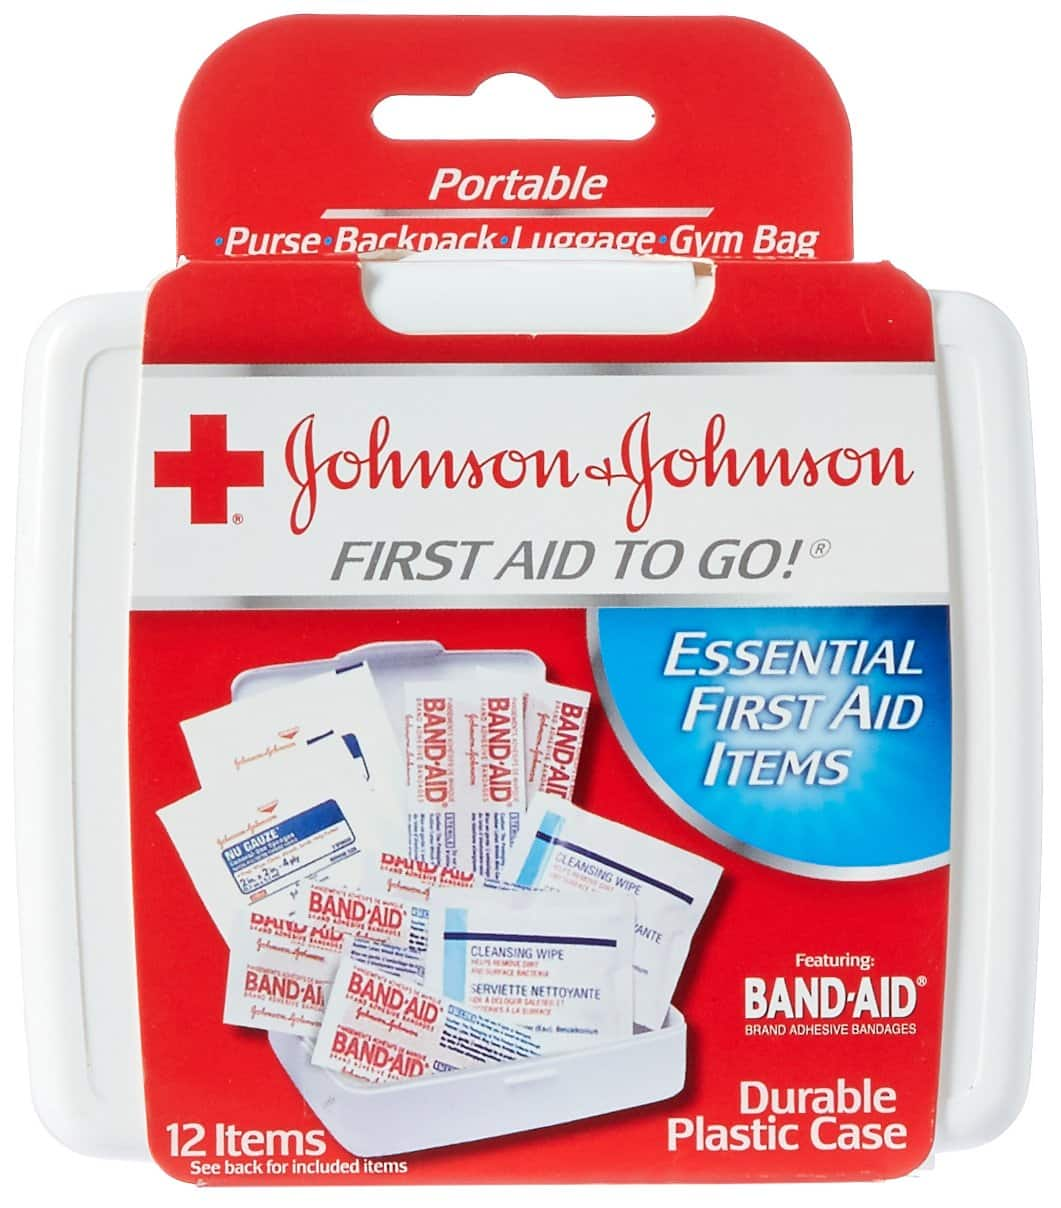 Johnson & Johnson First Aid To Go! Kit (Add-On) $0.99